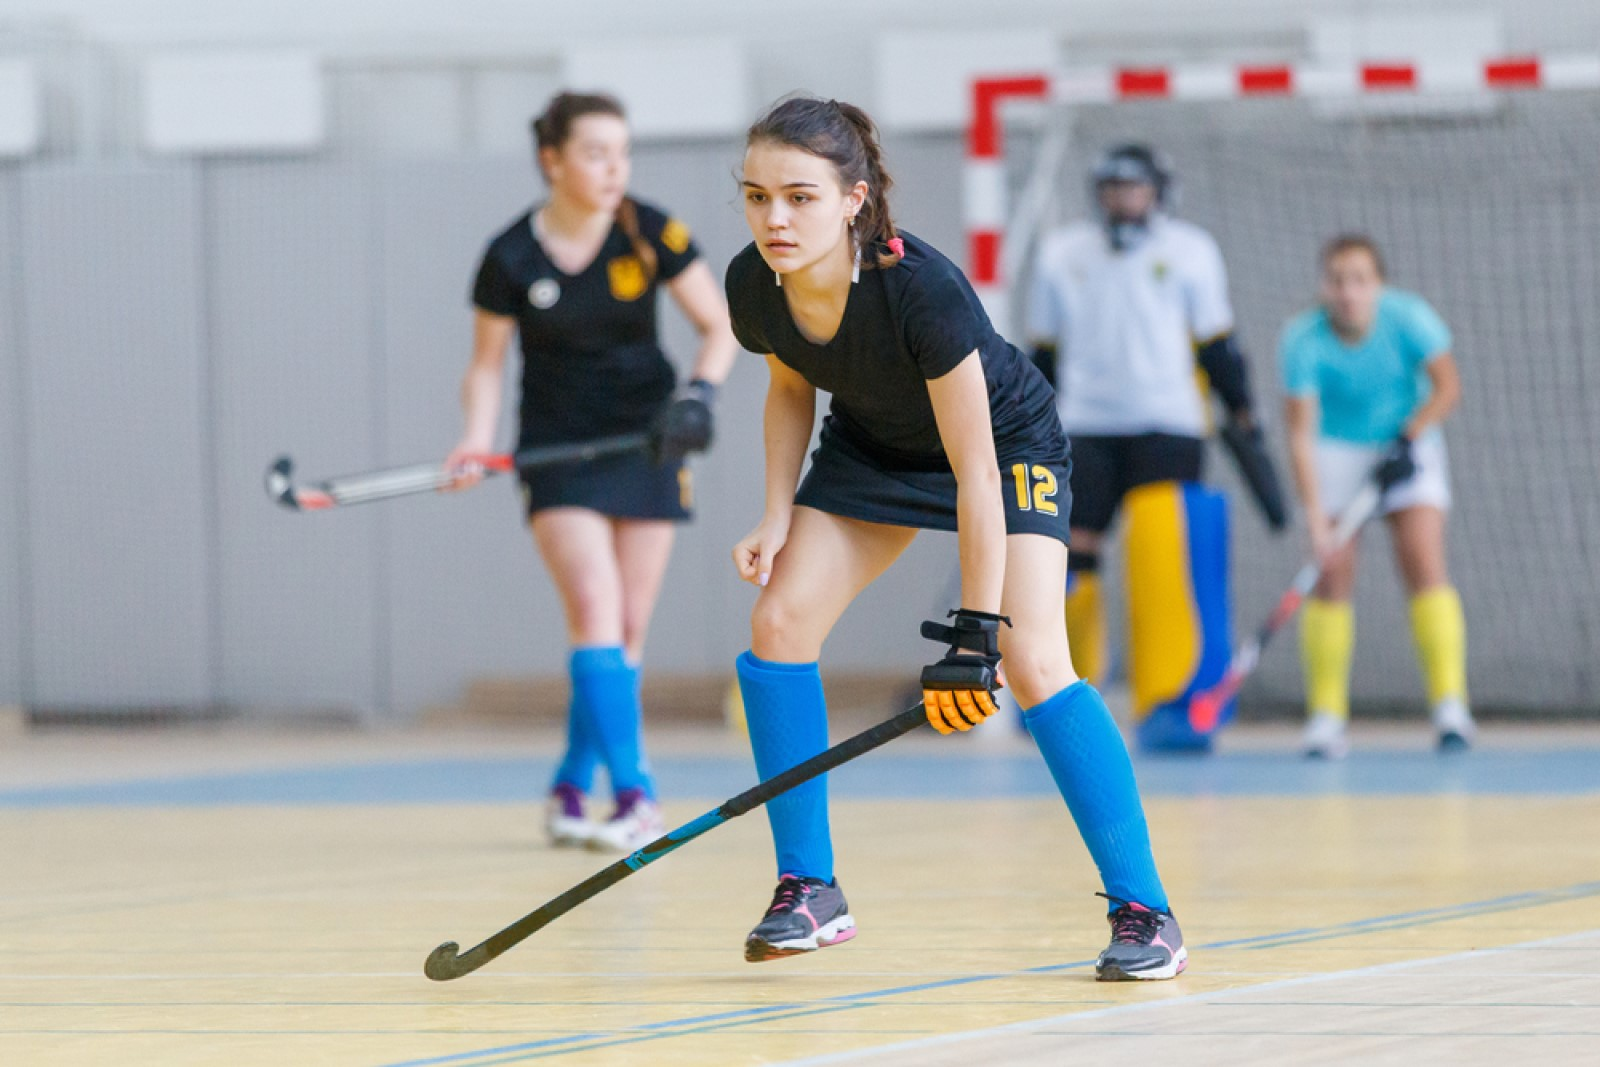 female hockey player on indoor court.jpg